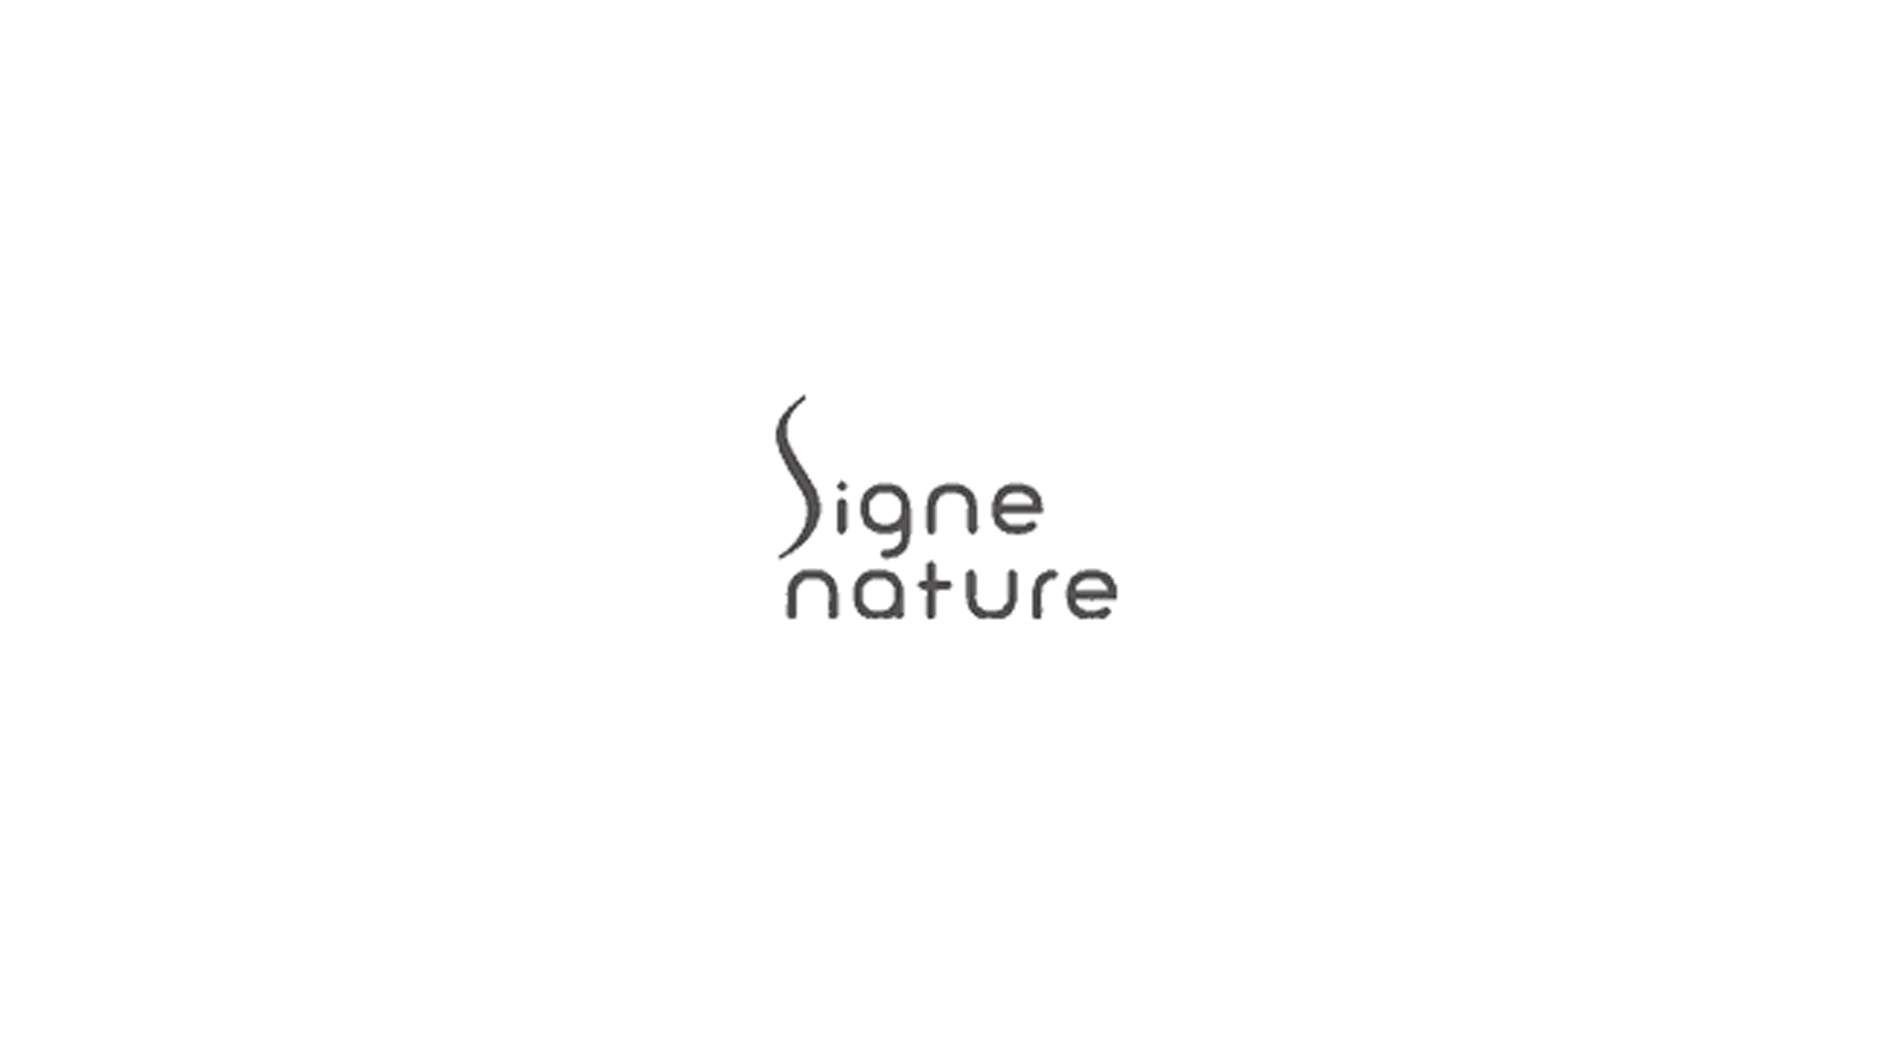 signenature-1.jpg